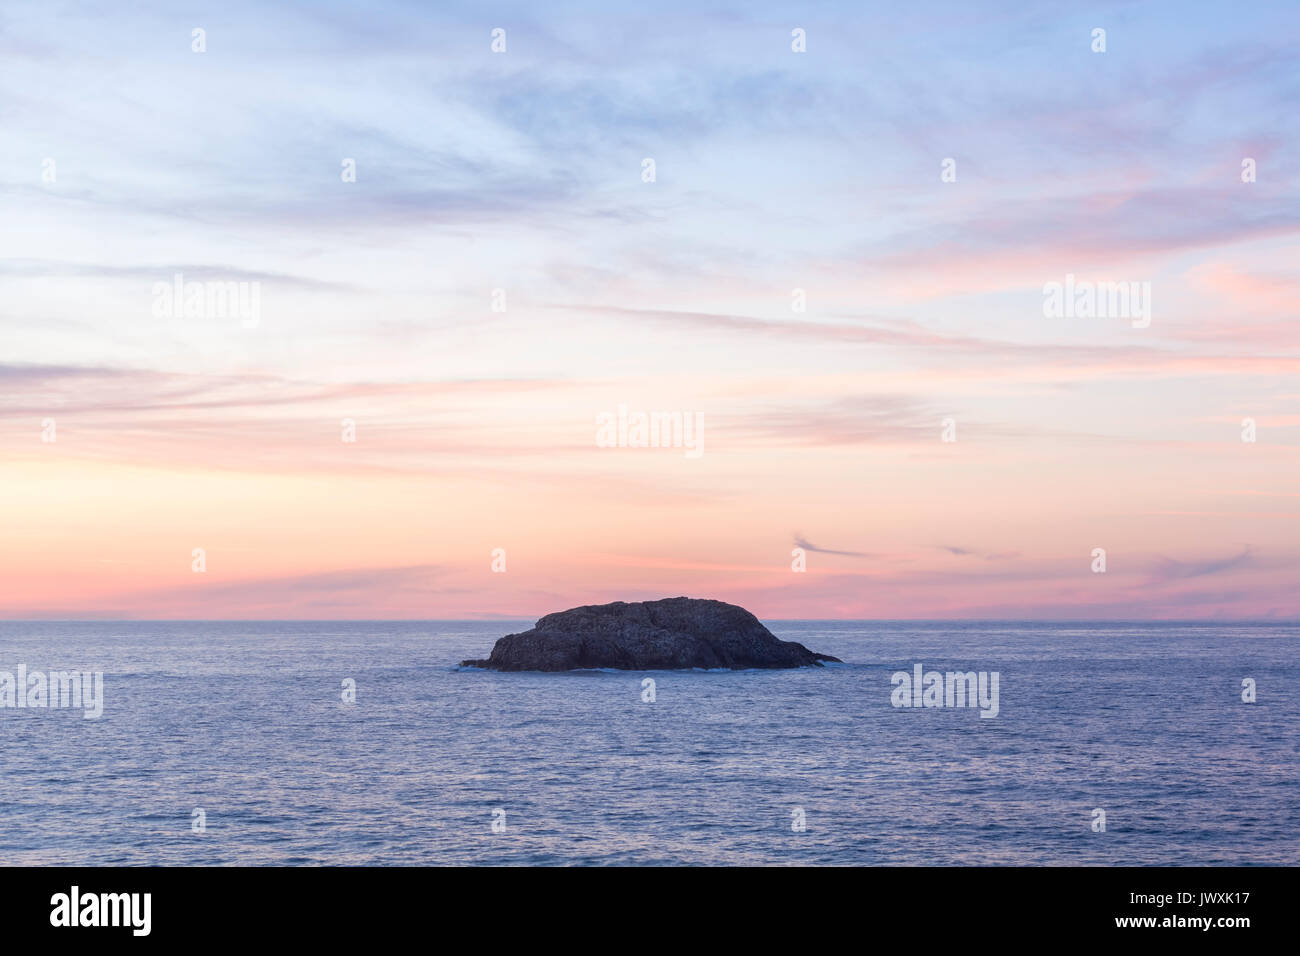 A lone rock in the Atlantic ocean at sunset brings feelings of loneliness, isolation and power in Bonavista, Newfoundland and Labrador, Canada. - Stock Image